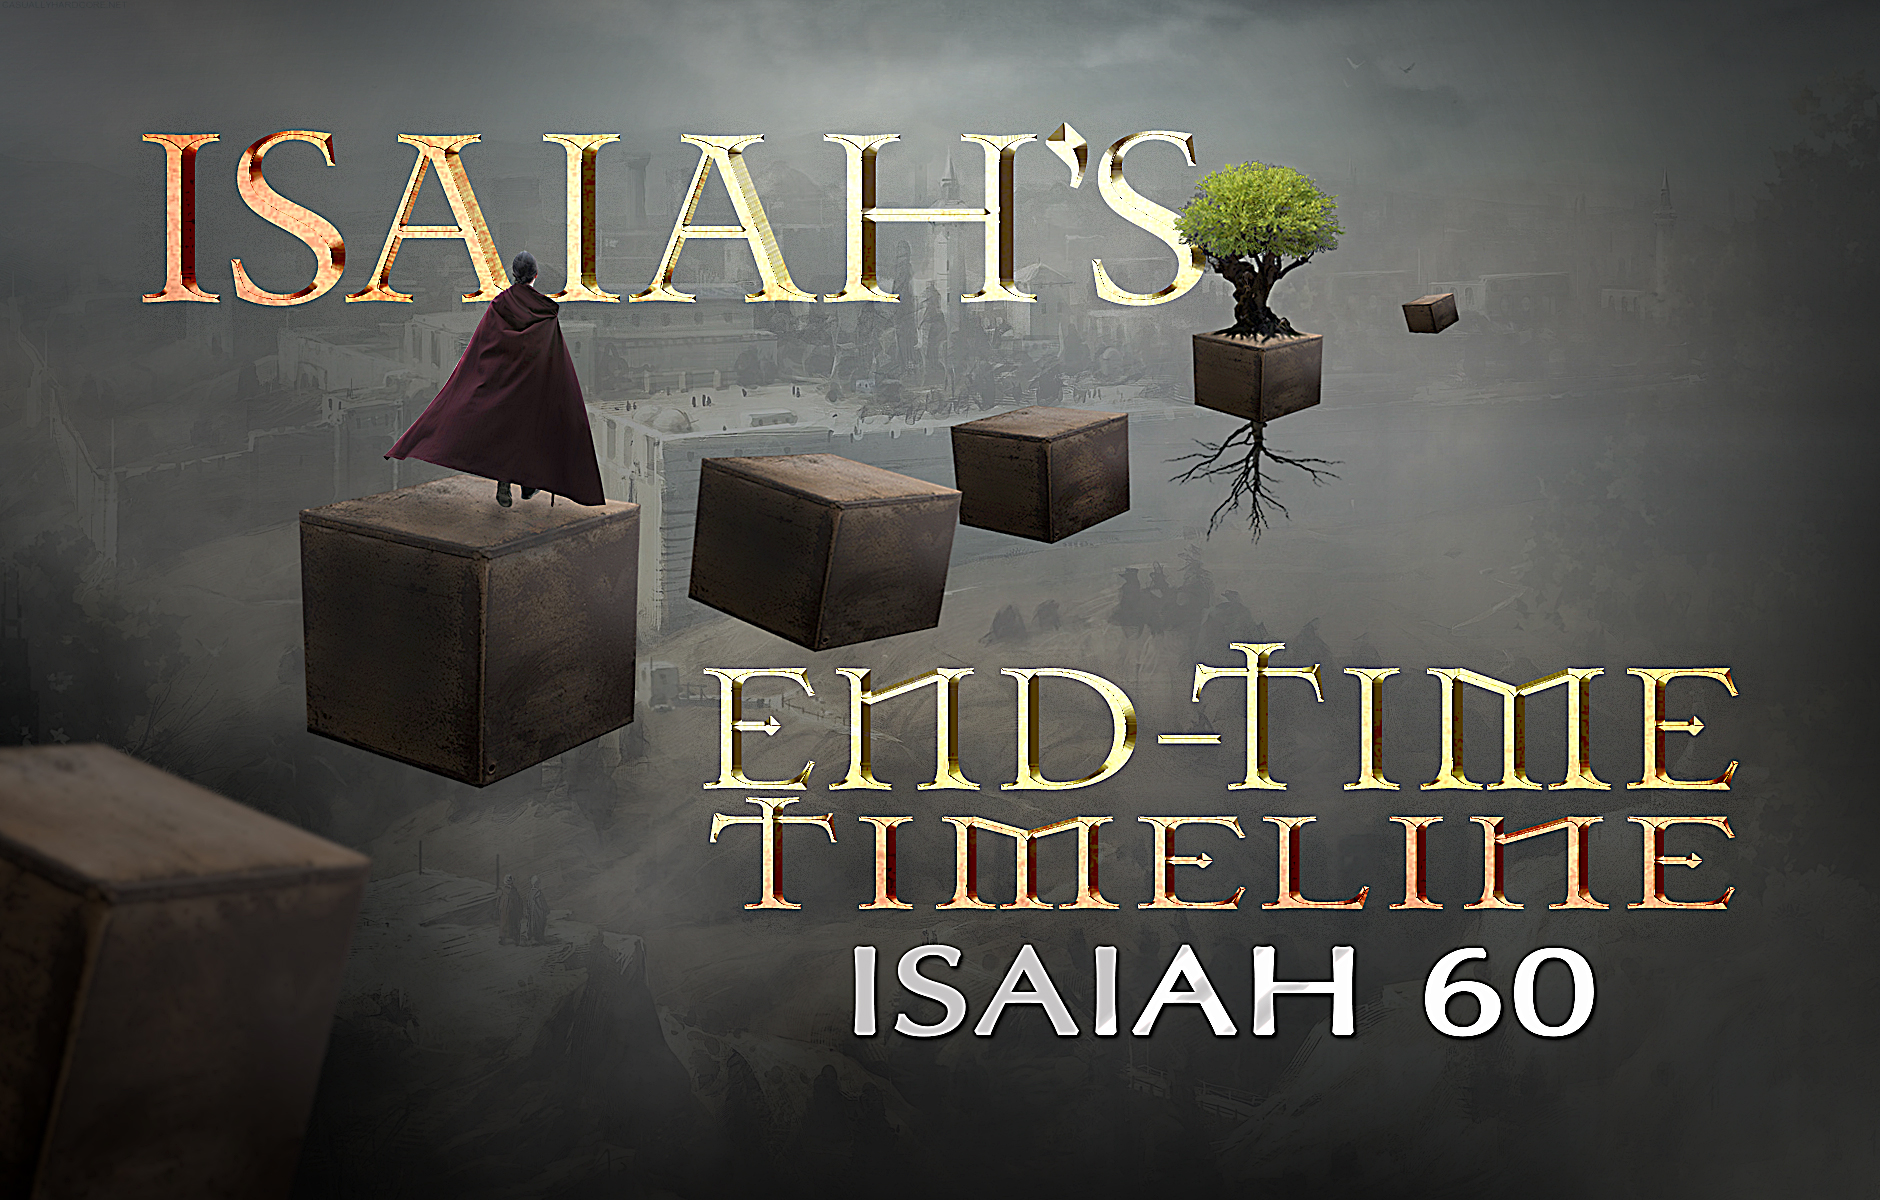 Isaiah's End-time Timeline Chapter 60